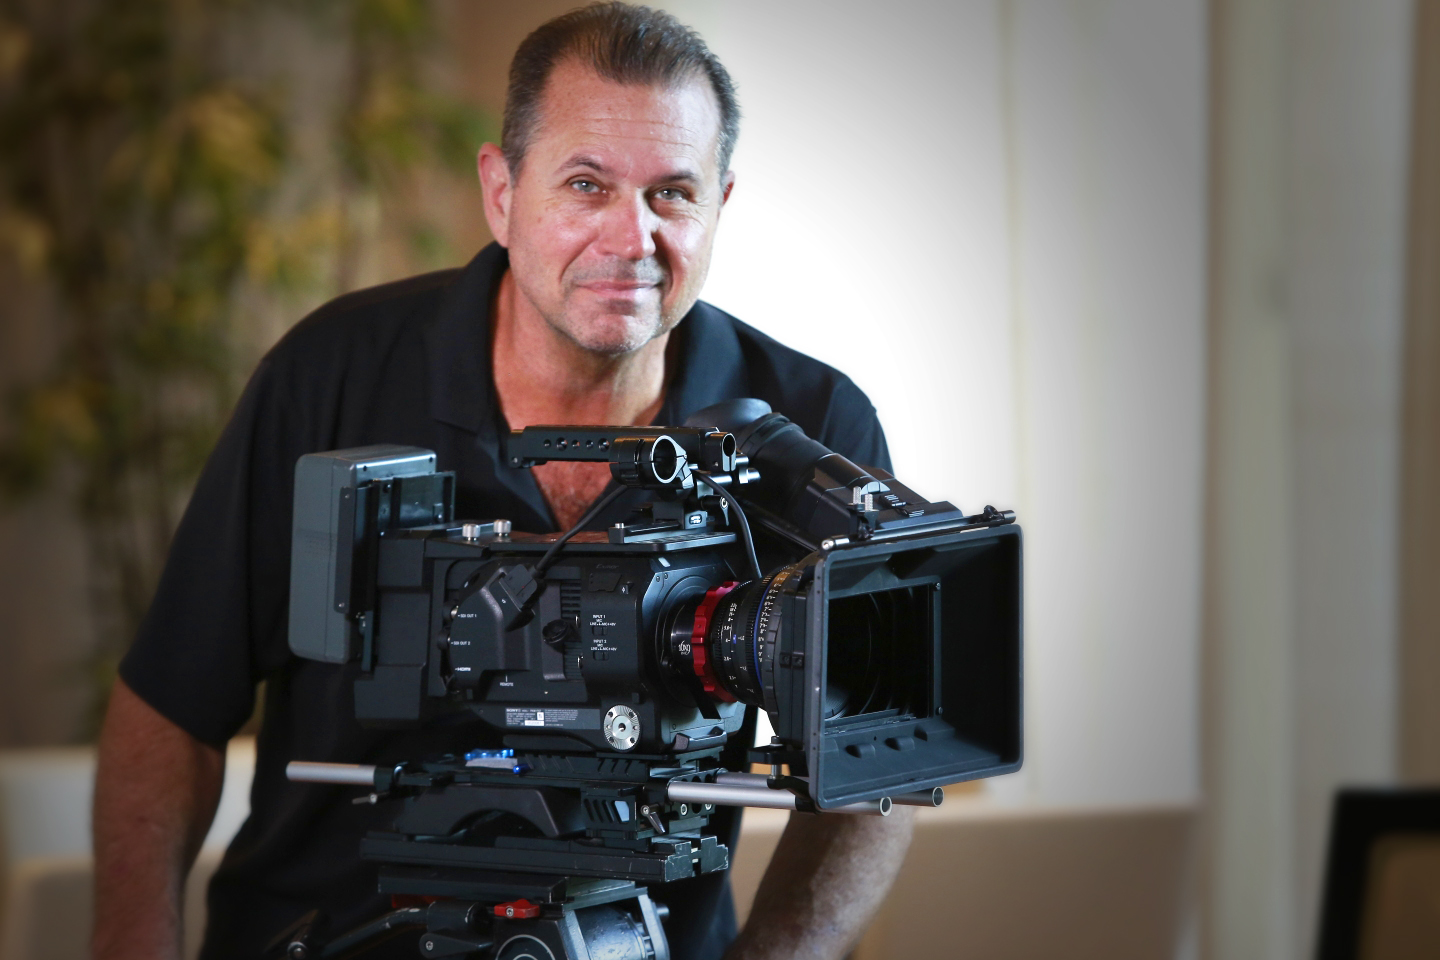 Mark Moore, Gumbo Productions owner and Director of Photography